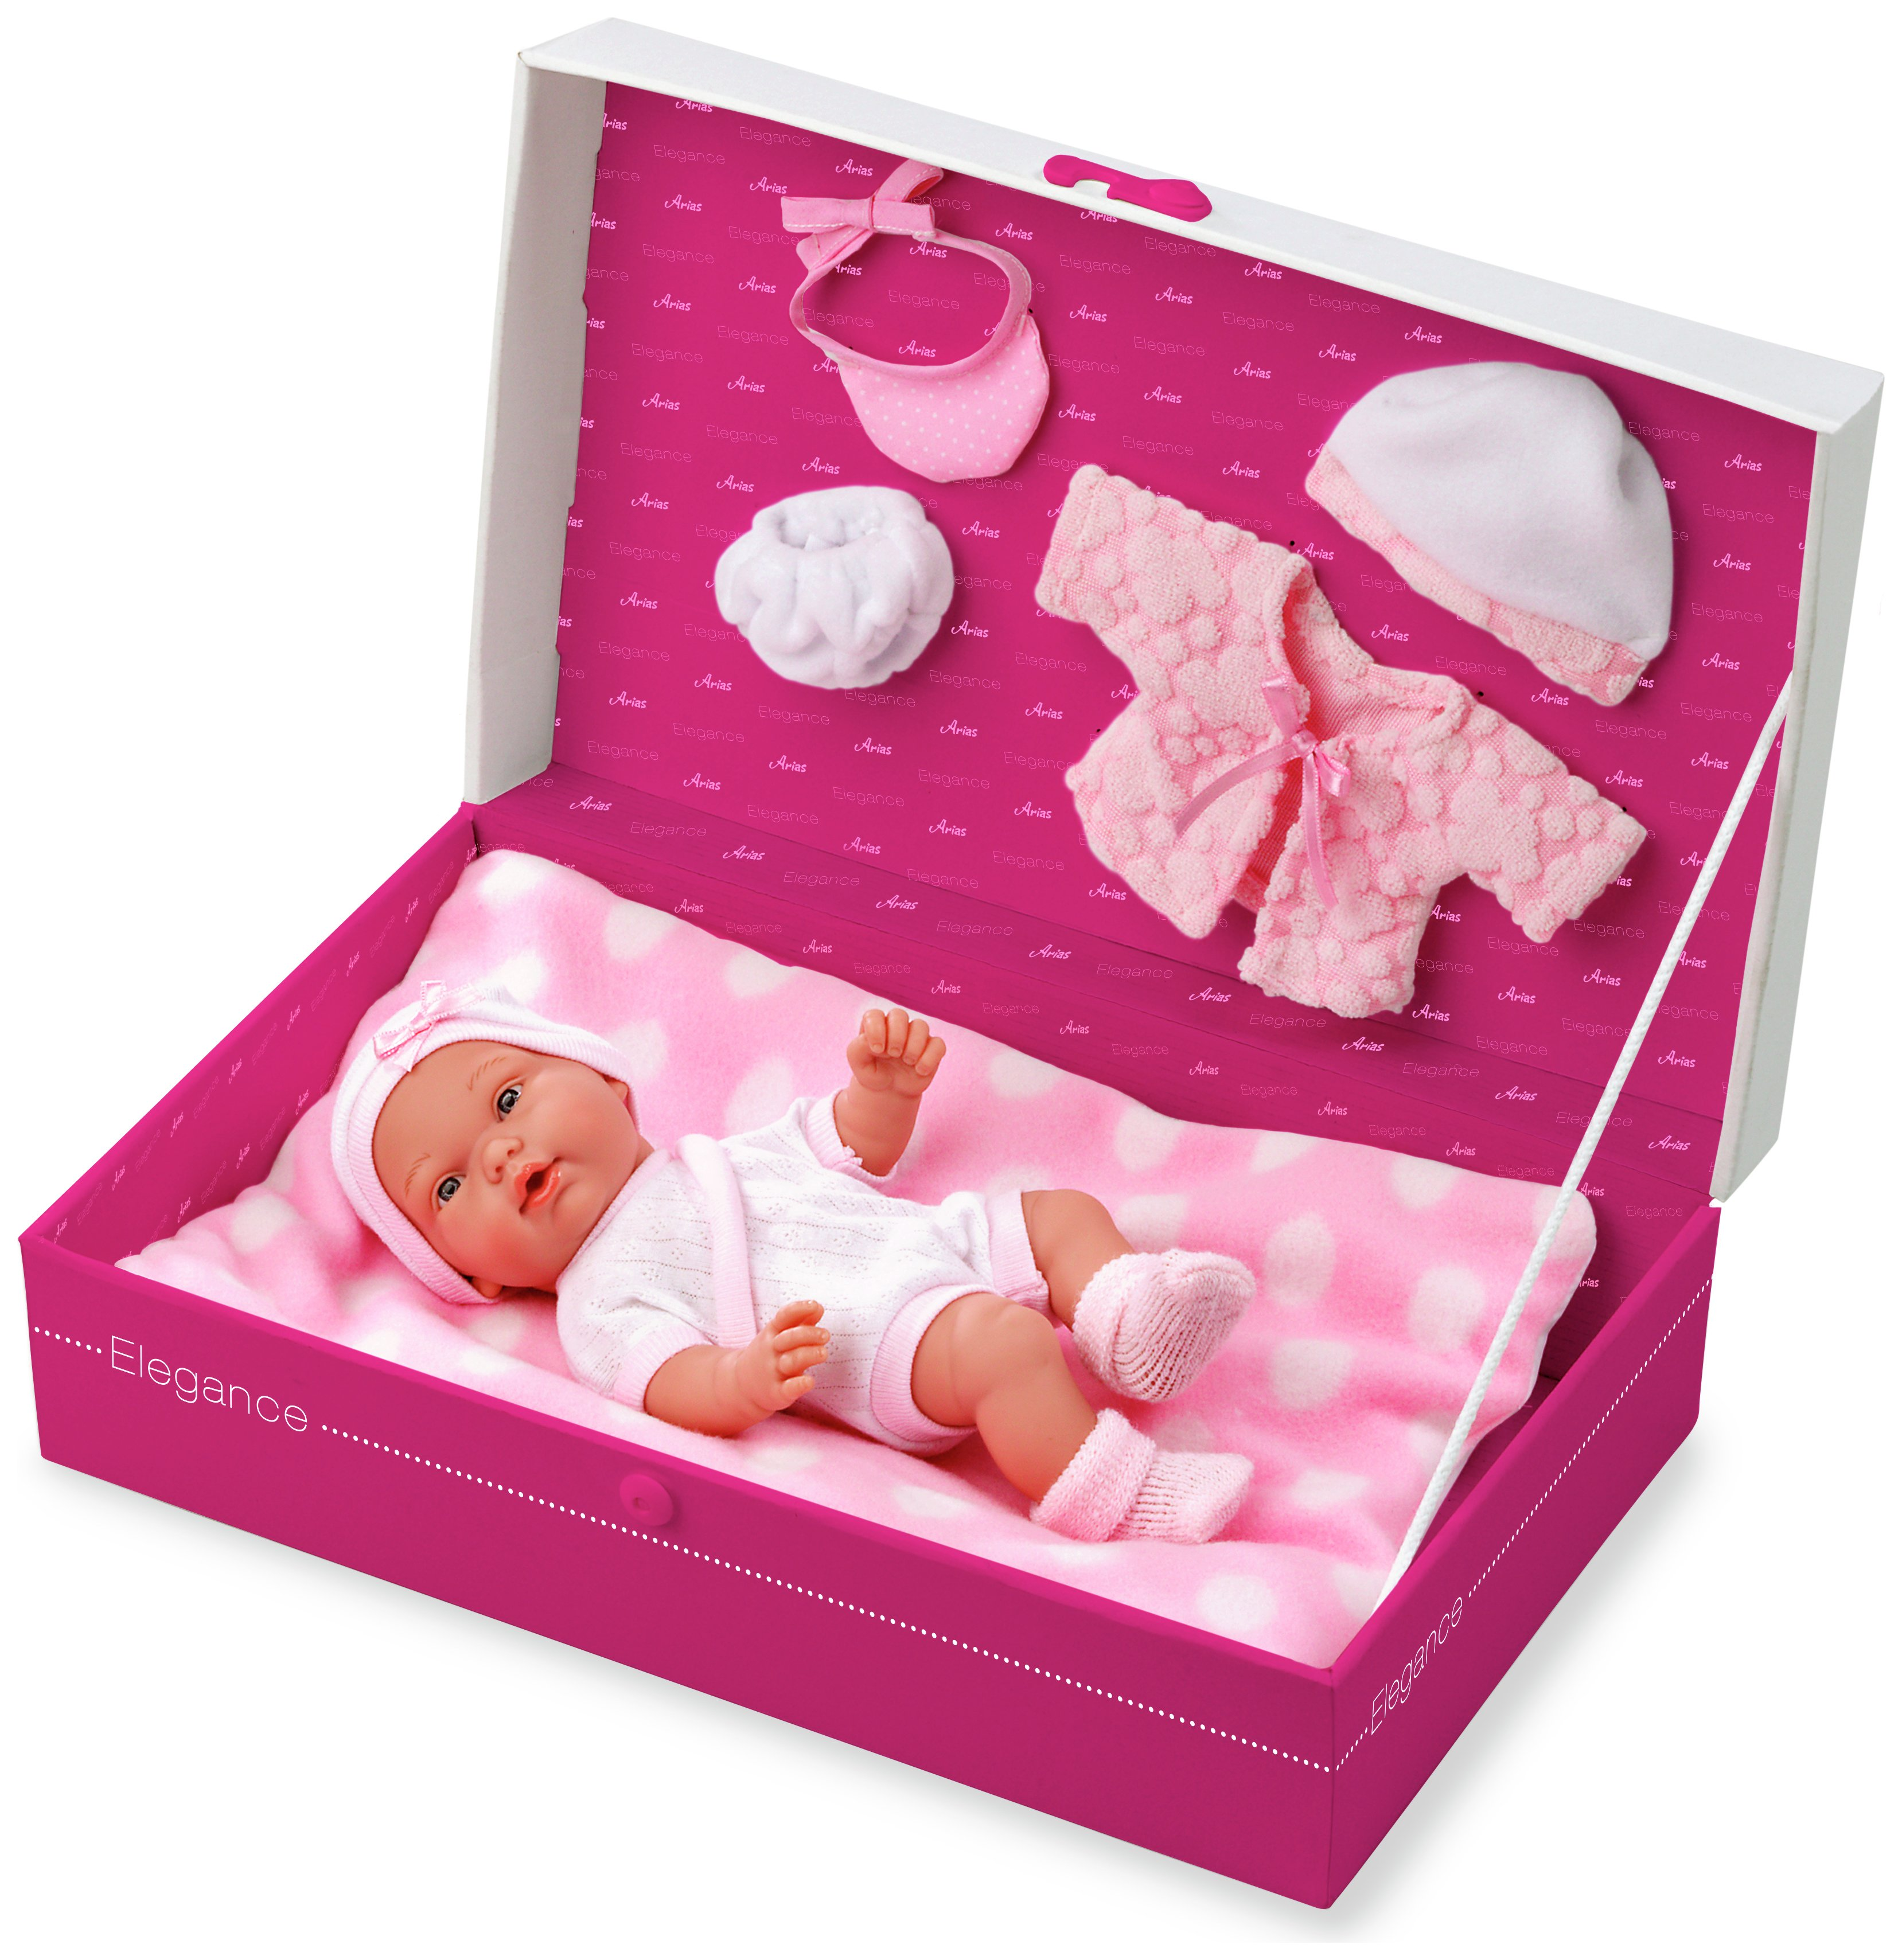 Image of Arias Elegance Baby Doll in Gift Box.